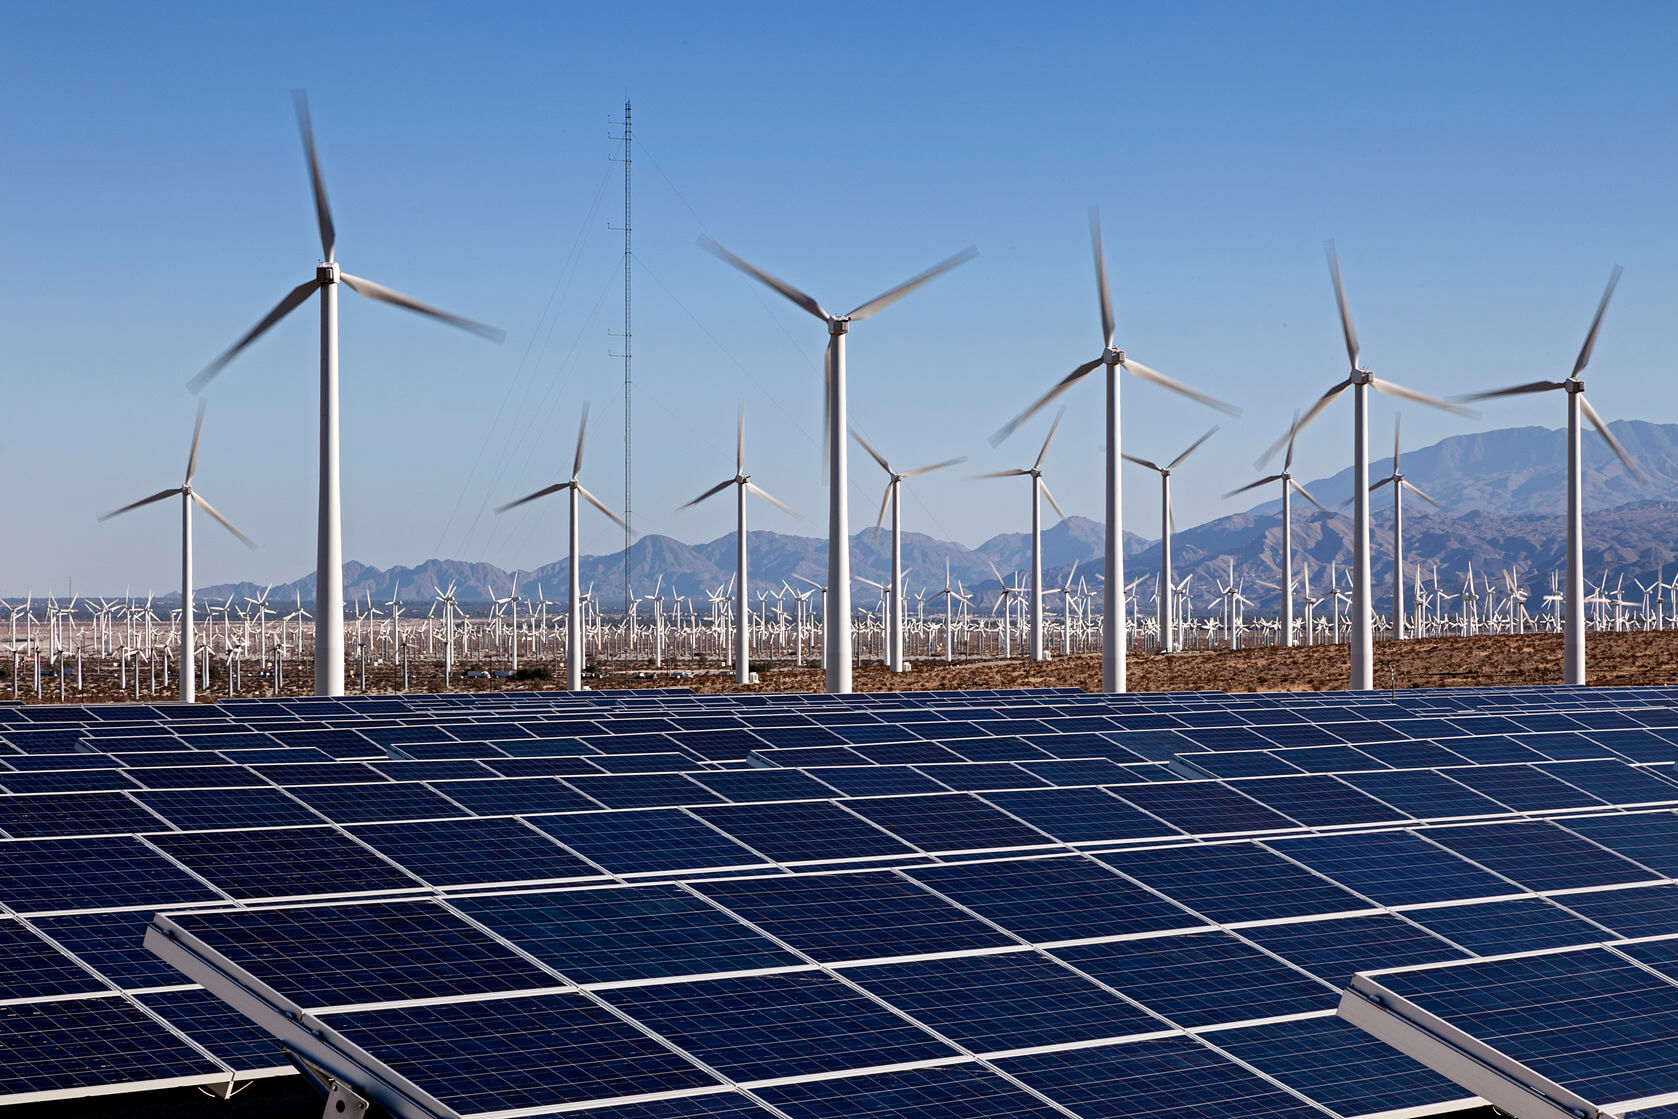 view-of-wind-and-solar-farm-in-desert Renewable Choice Energy Issues RFI For North American Developers